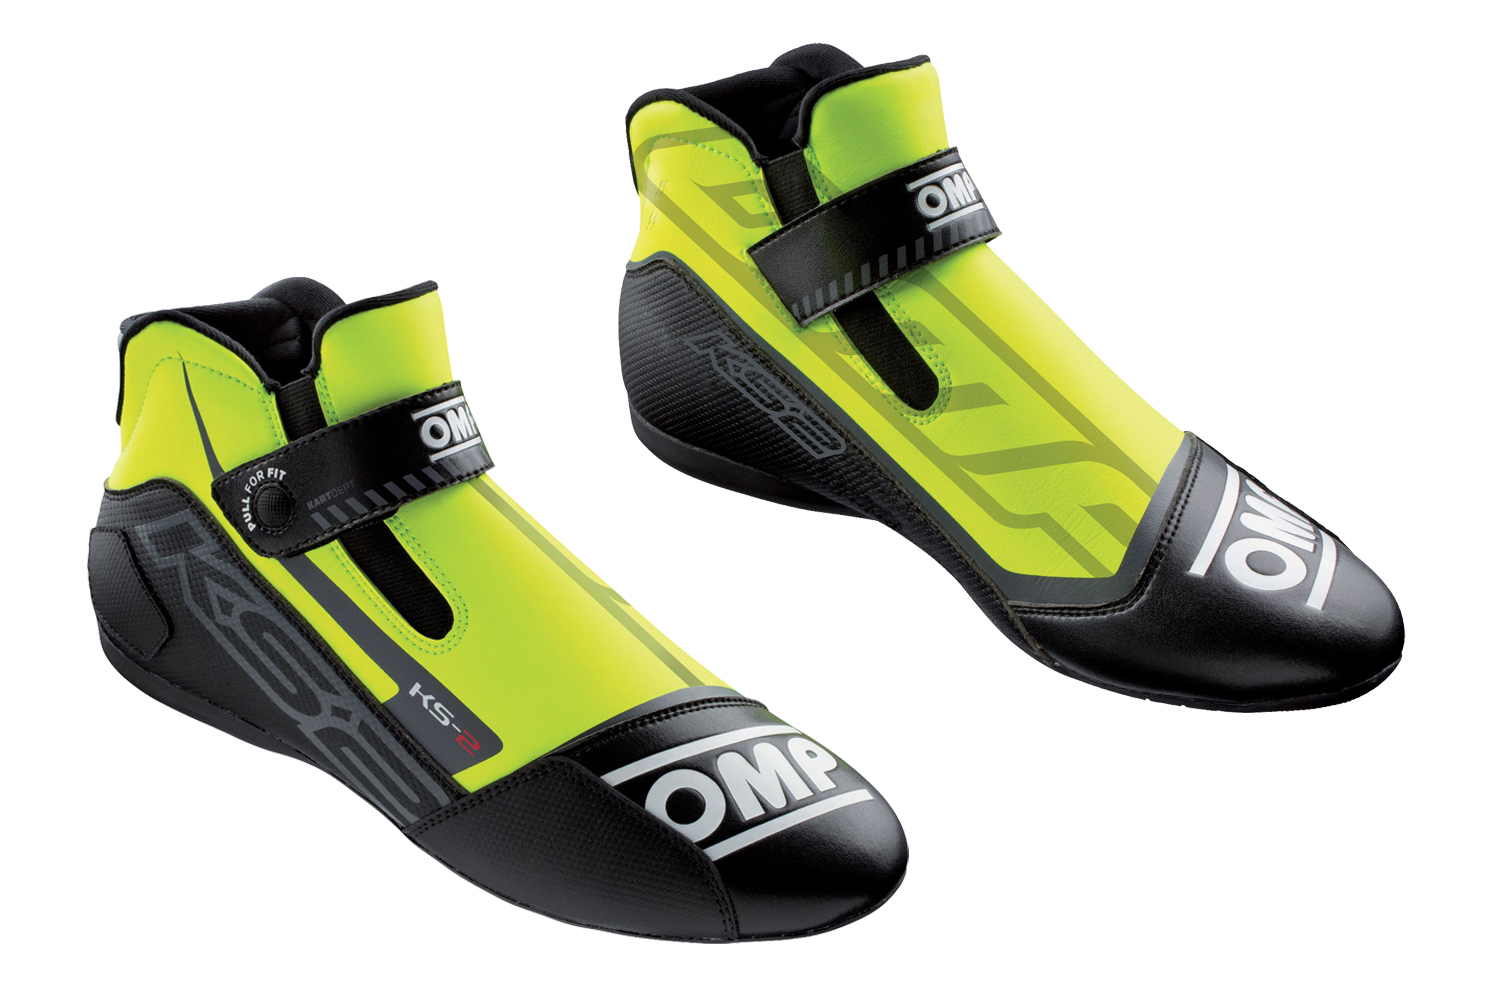 OMP Racing IC82505935 Shoe, KS-2, Driving, Mid-Top, FIA Approved, Suede Leather Outer, Fire Retardant Fabric Inner, Fluorescent Yellow / Black, Size 2-1/2, Pair